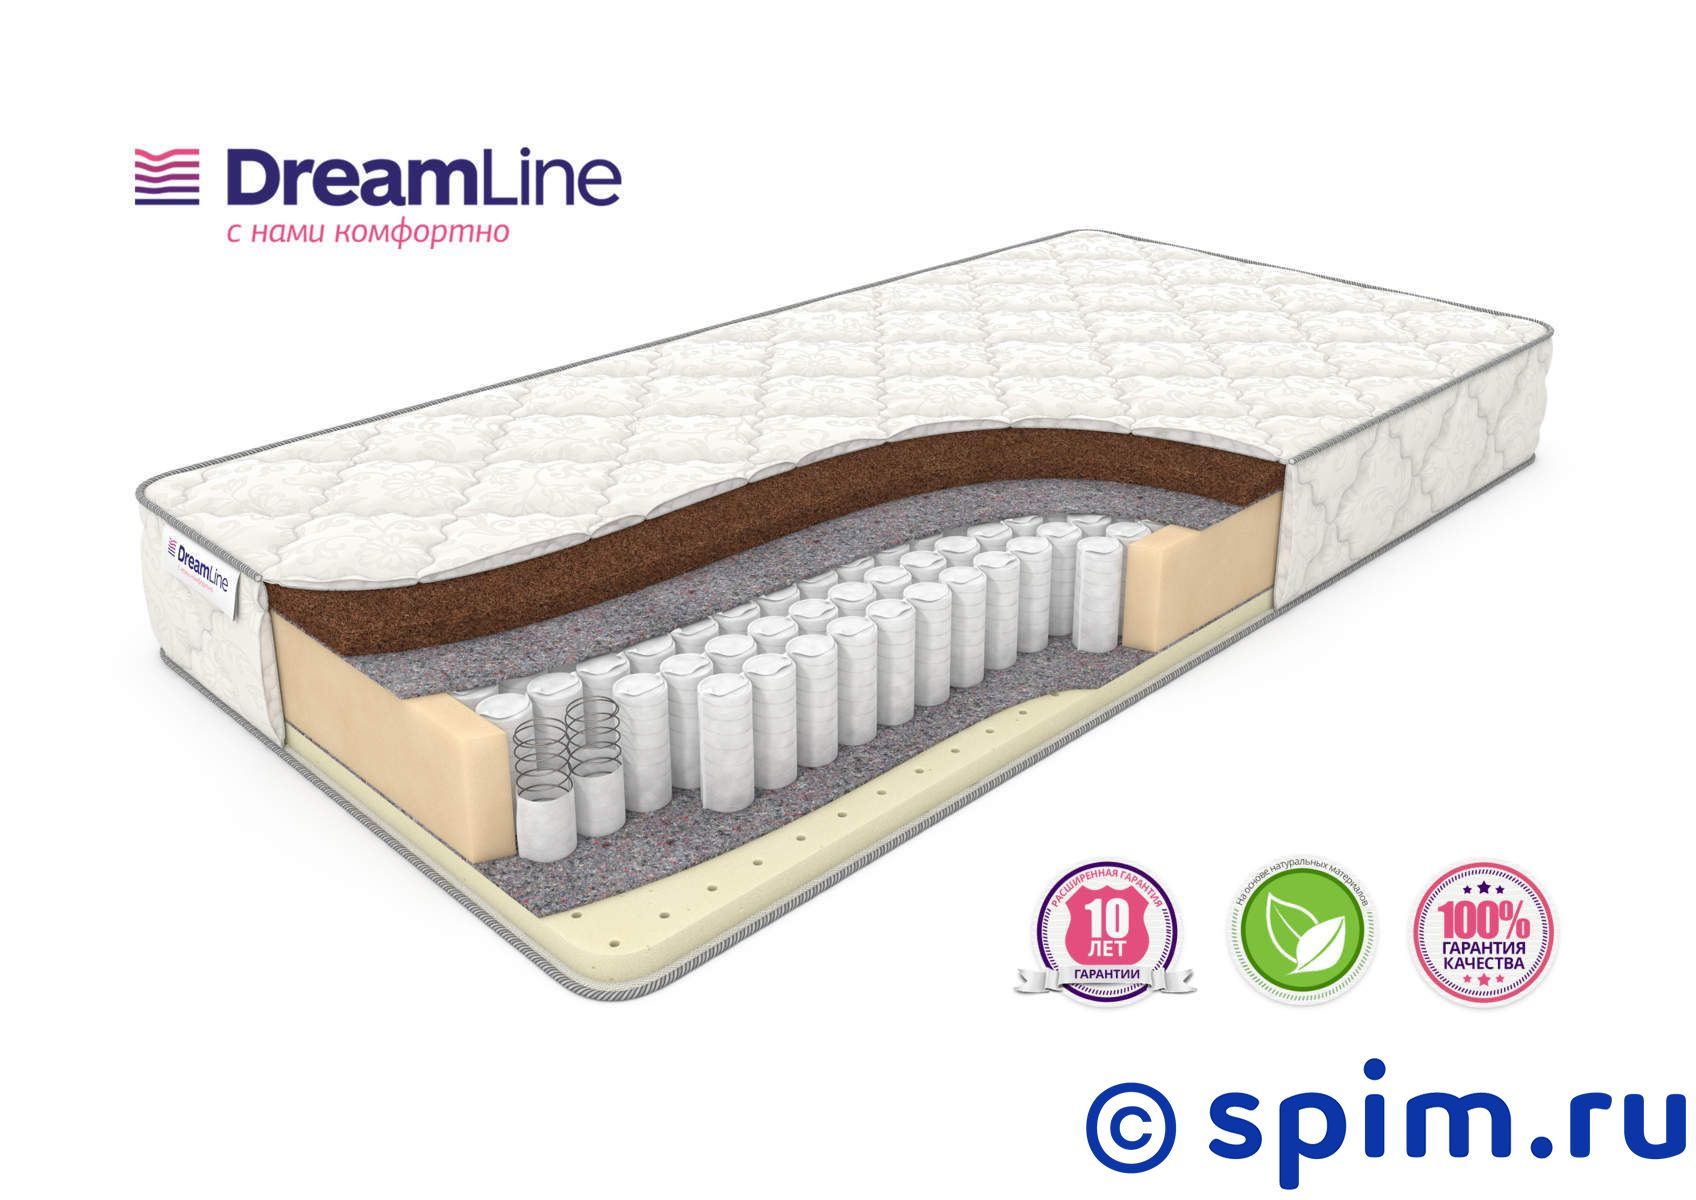 Матрас DreamLine SleepDream Tfk 150х195 см матрас dreamline sleepdream medium tfk 140х200 см